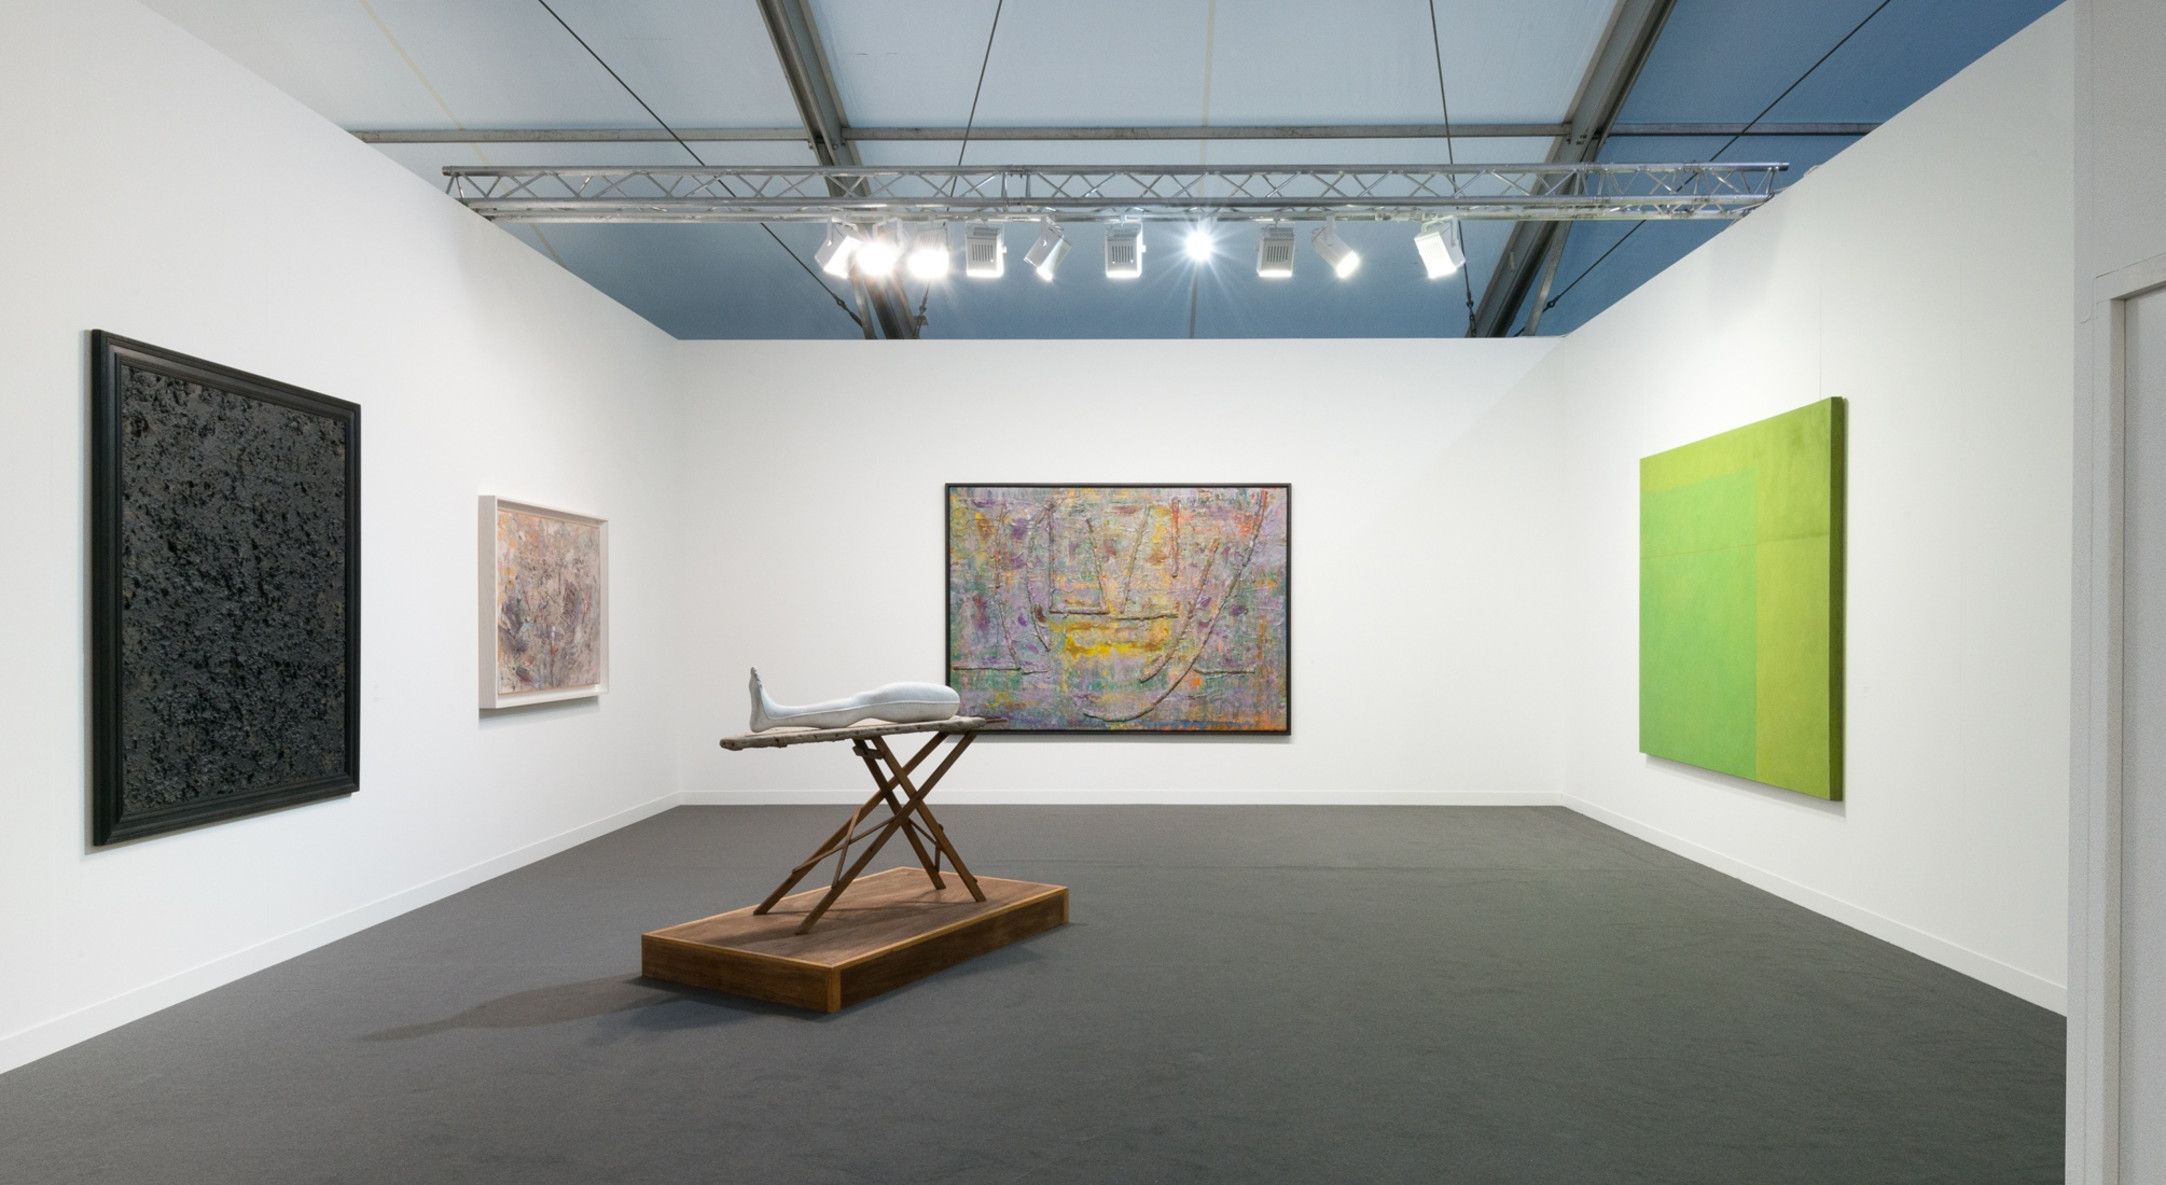 Installation view of Hales Gallery Booth at Frieze London 2017